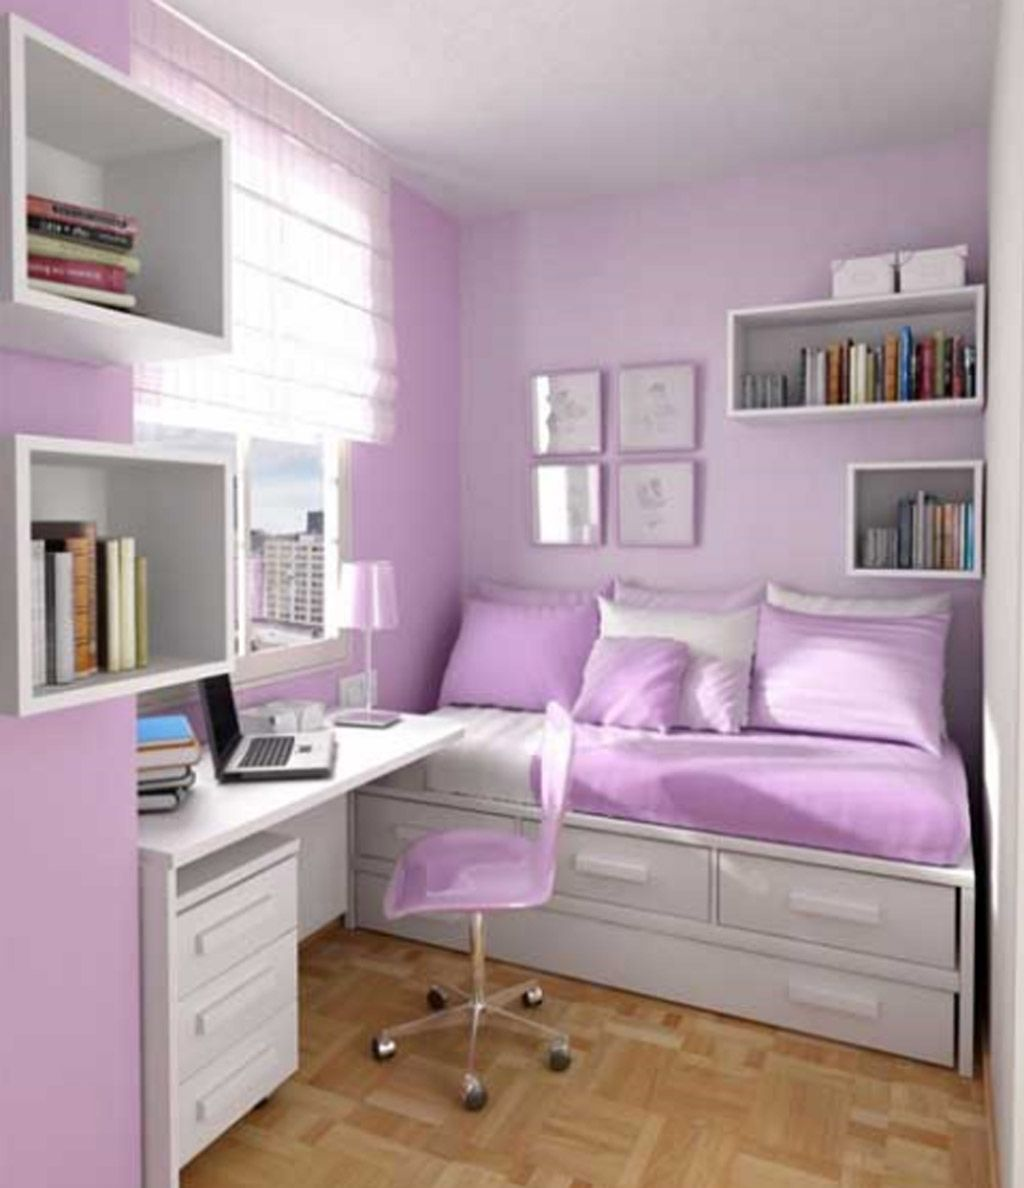 Decor For Teenage Bedrooms Bedroom Pinterest Bedroom Room And